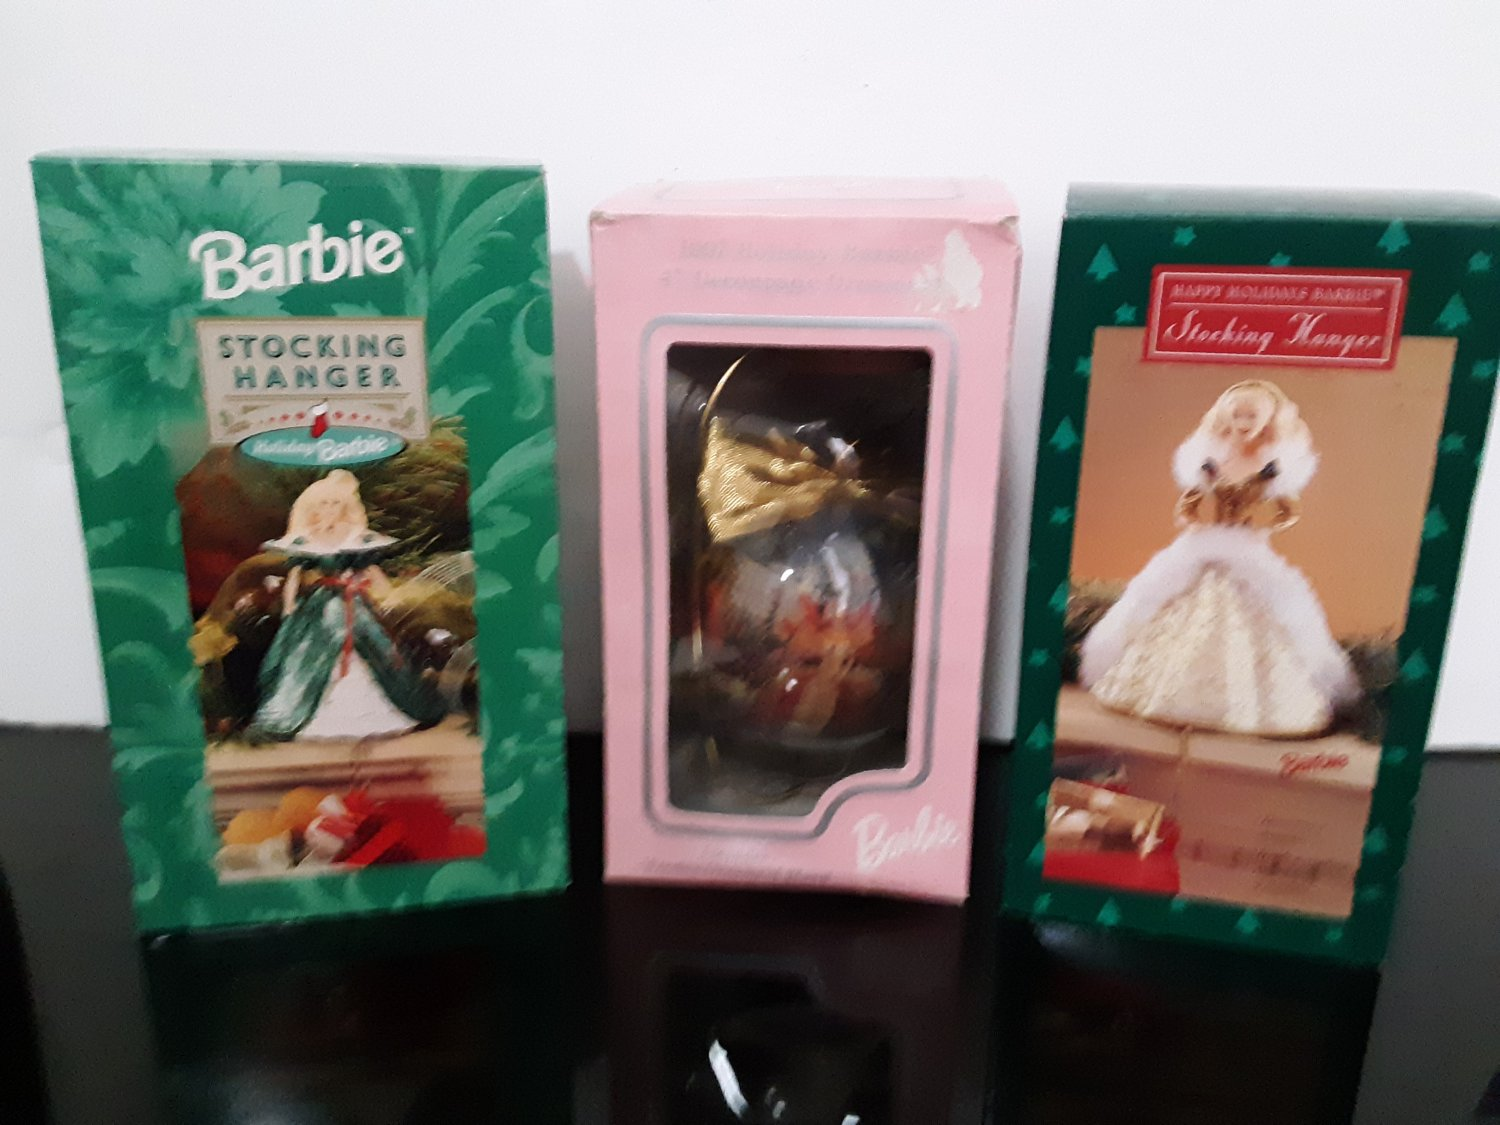 New Old Stock - 3 - Holiday Barbie - Christmas Ornament - Stocking Hangers